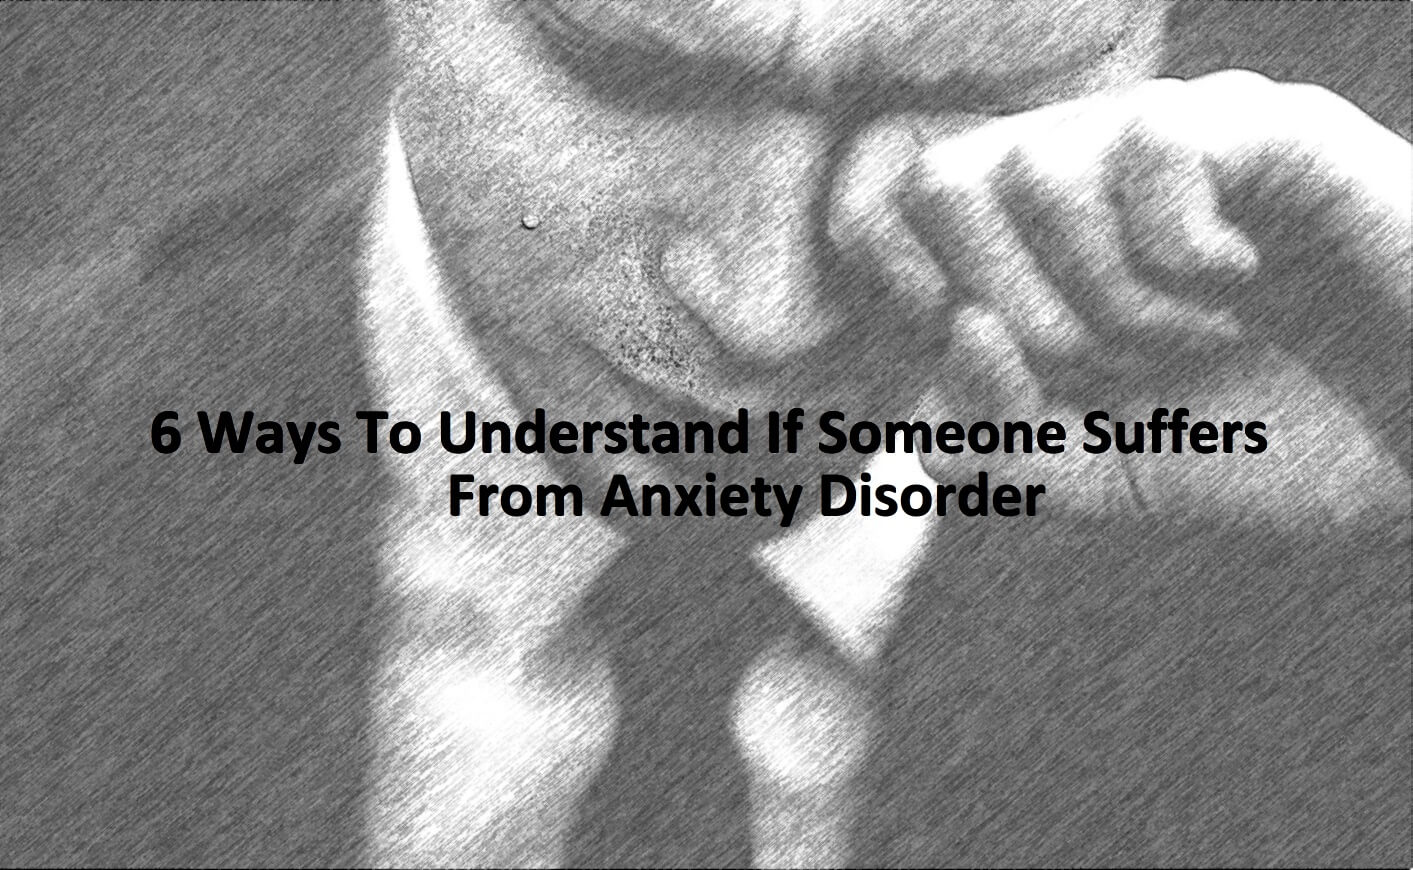 6 Ways To Understand If Someone Suffers From Anxiety Disorder